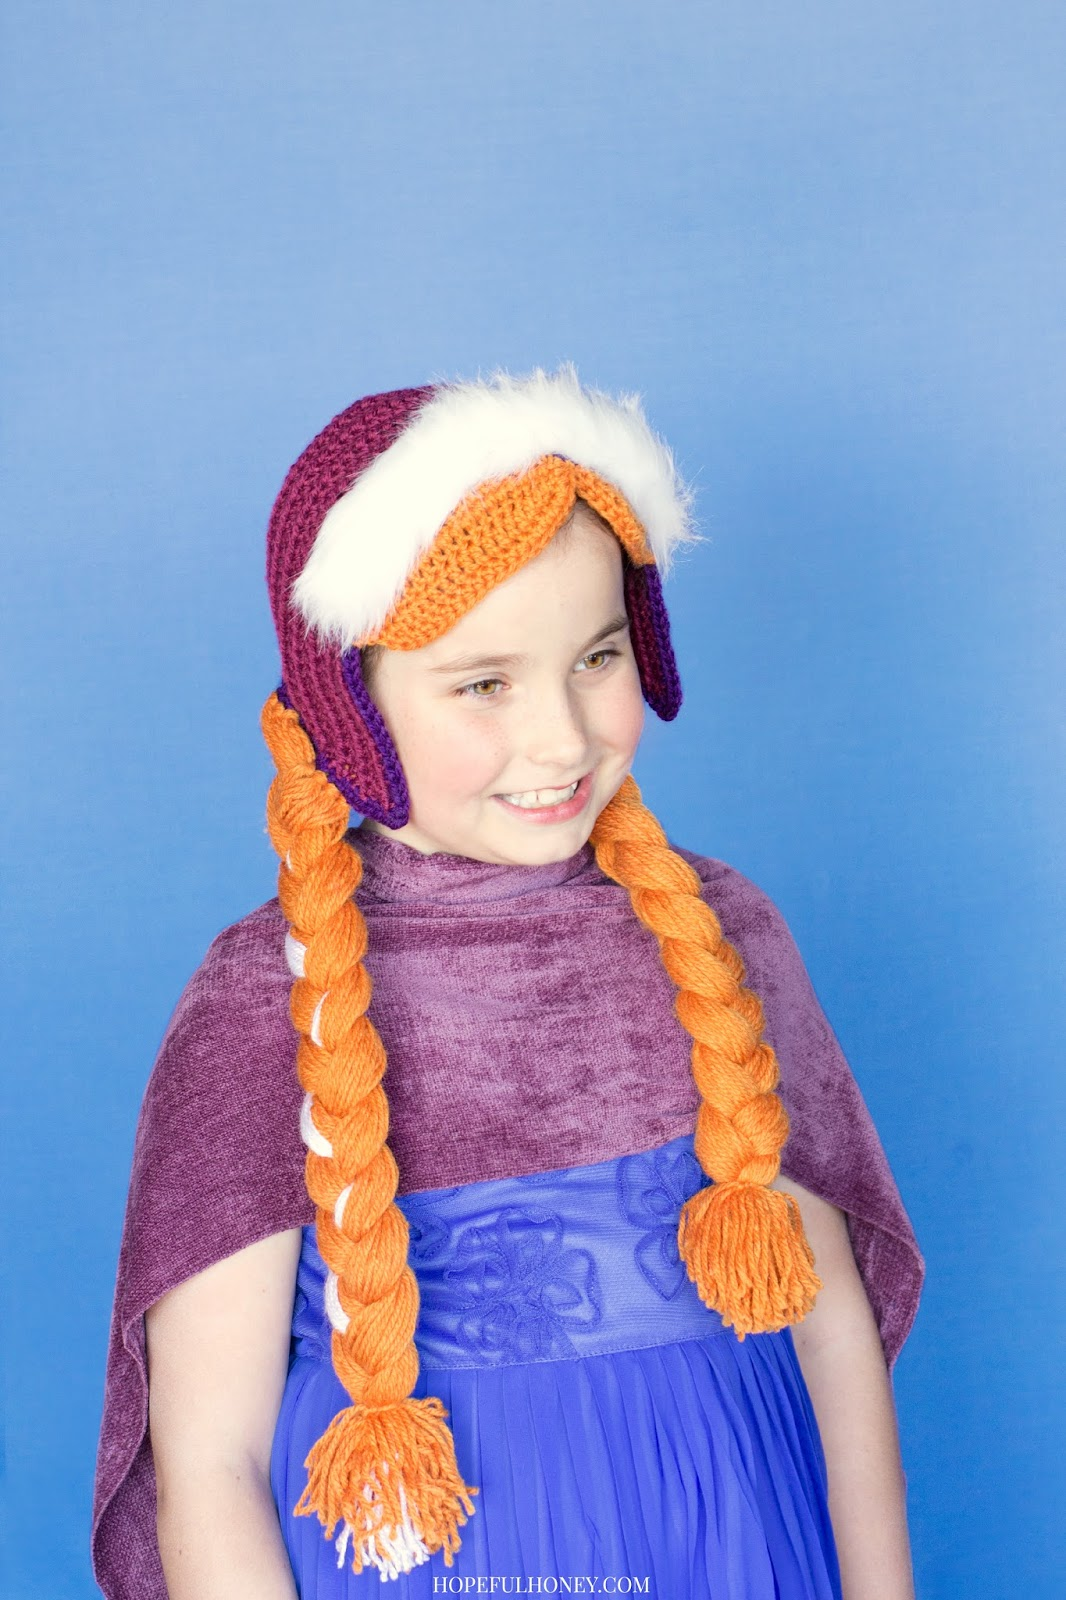 Crochet create frozen princess anna inspired hat crochet pattern